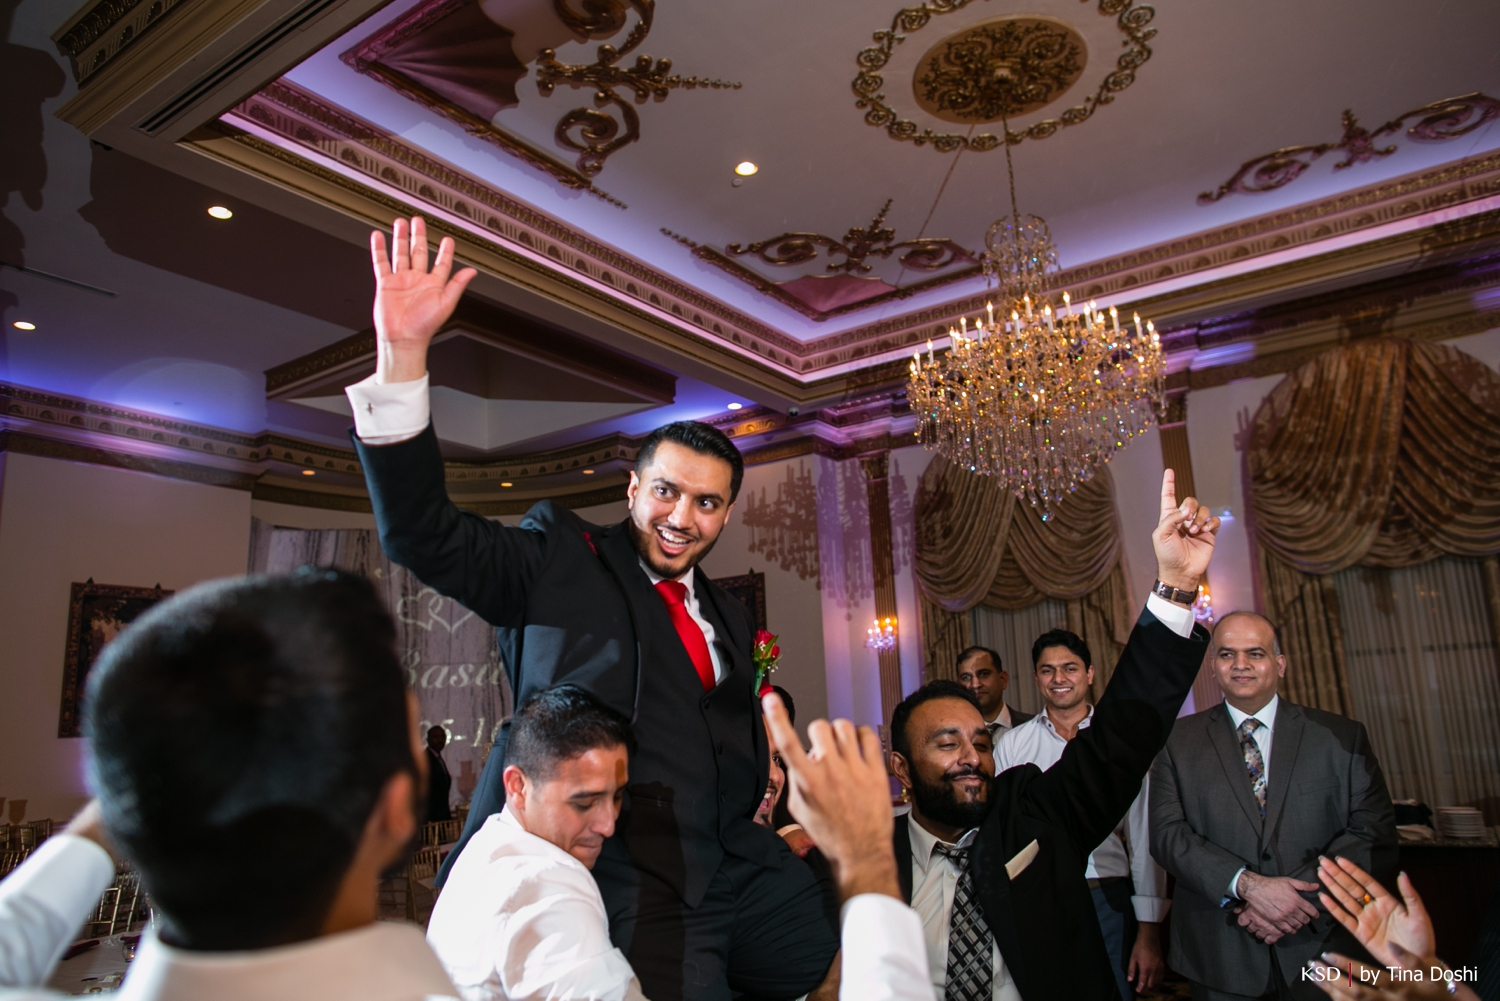 nj_south_asian_wedding_0141